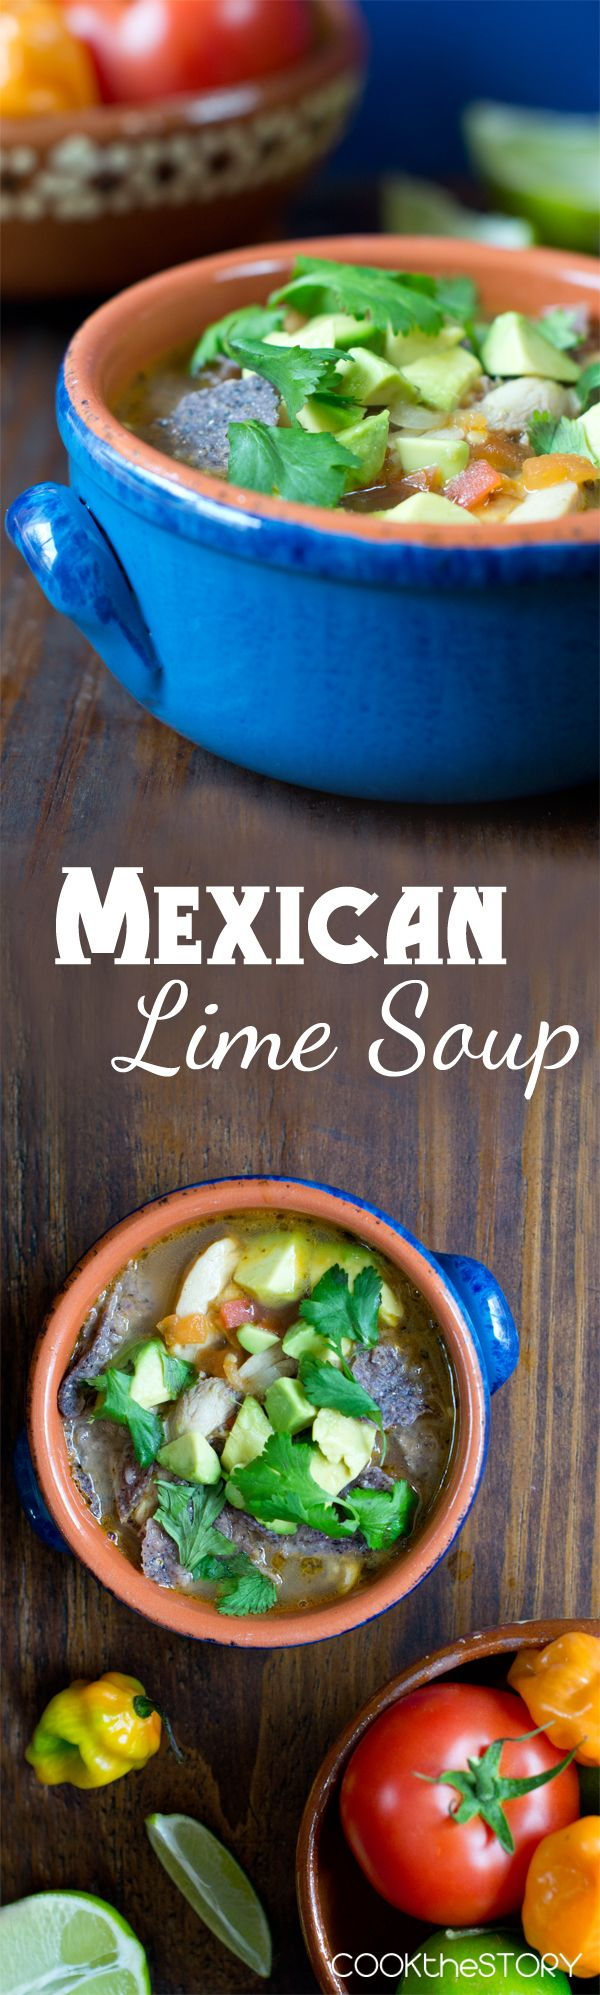 Mexican Lime Soup (Sopa de Lima) in 15 Minutes | Recipe ...